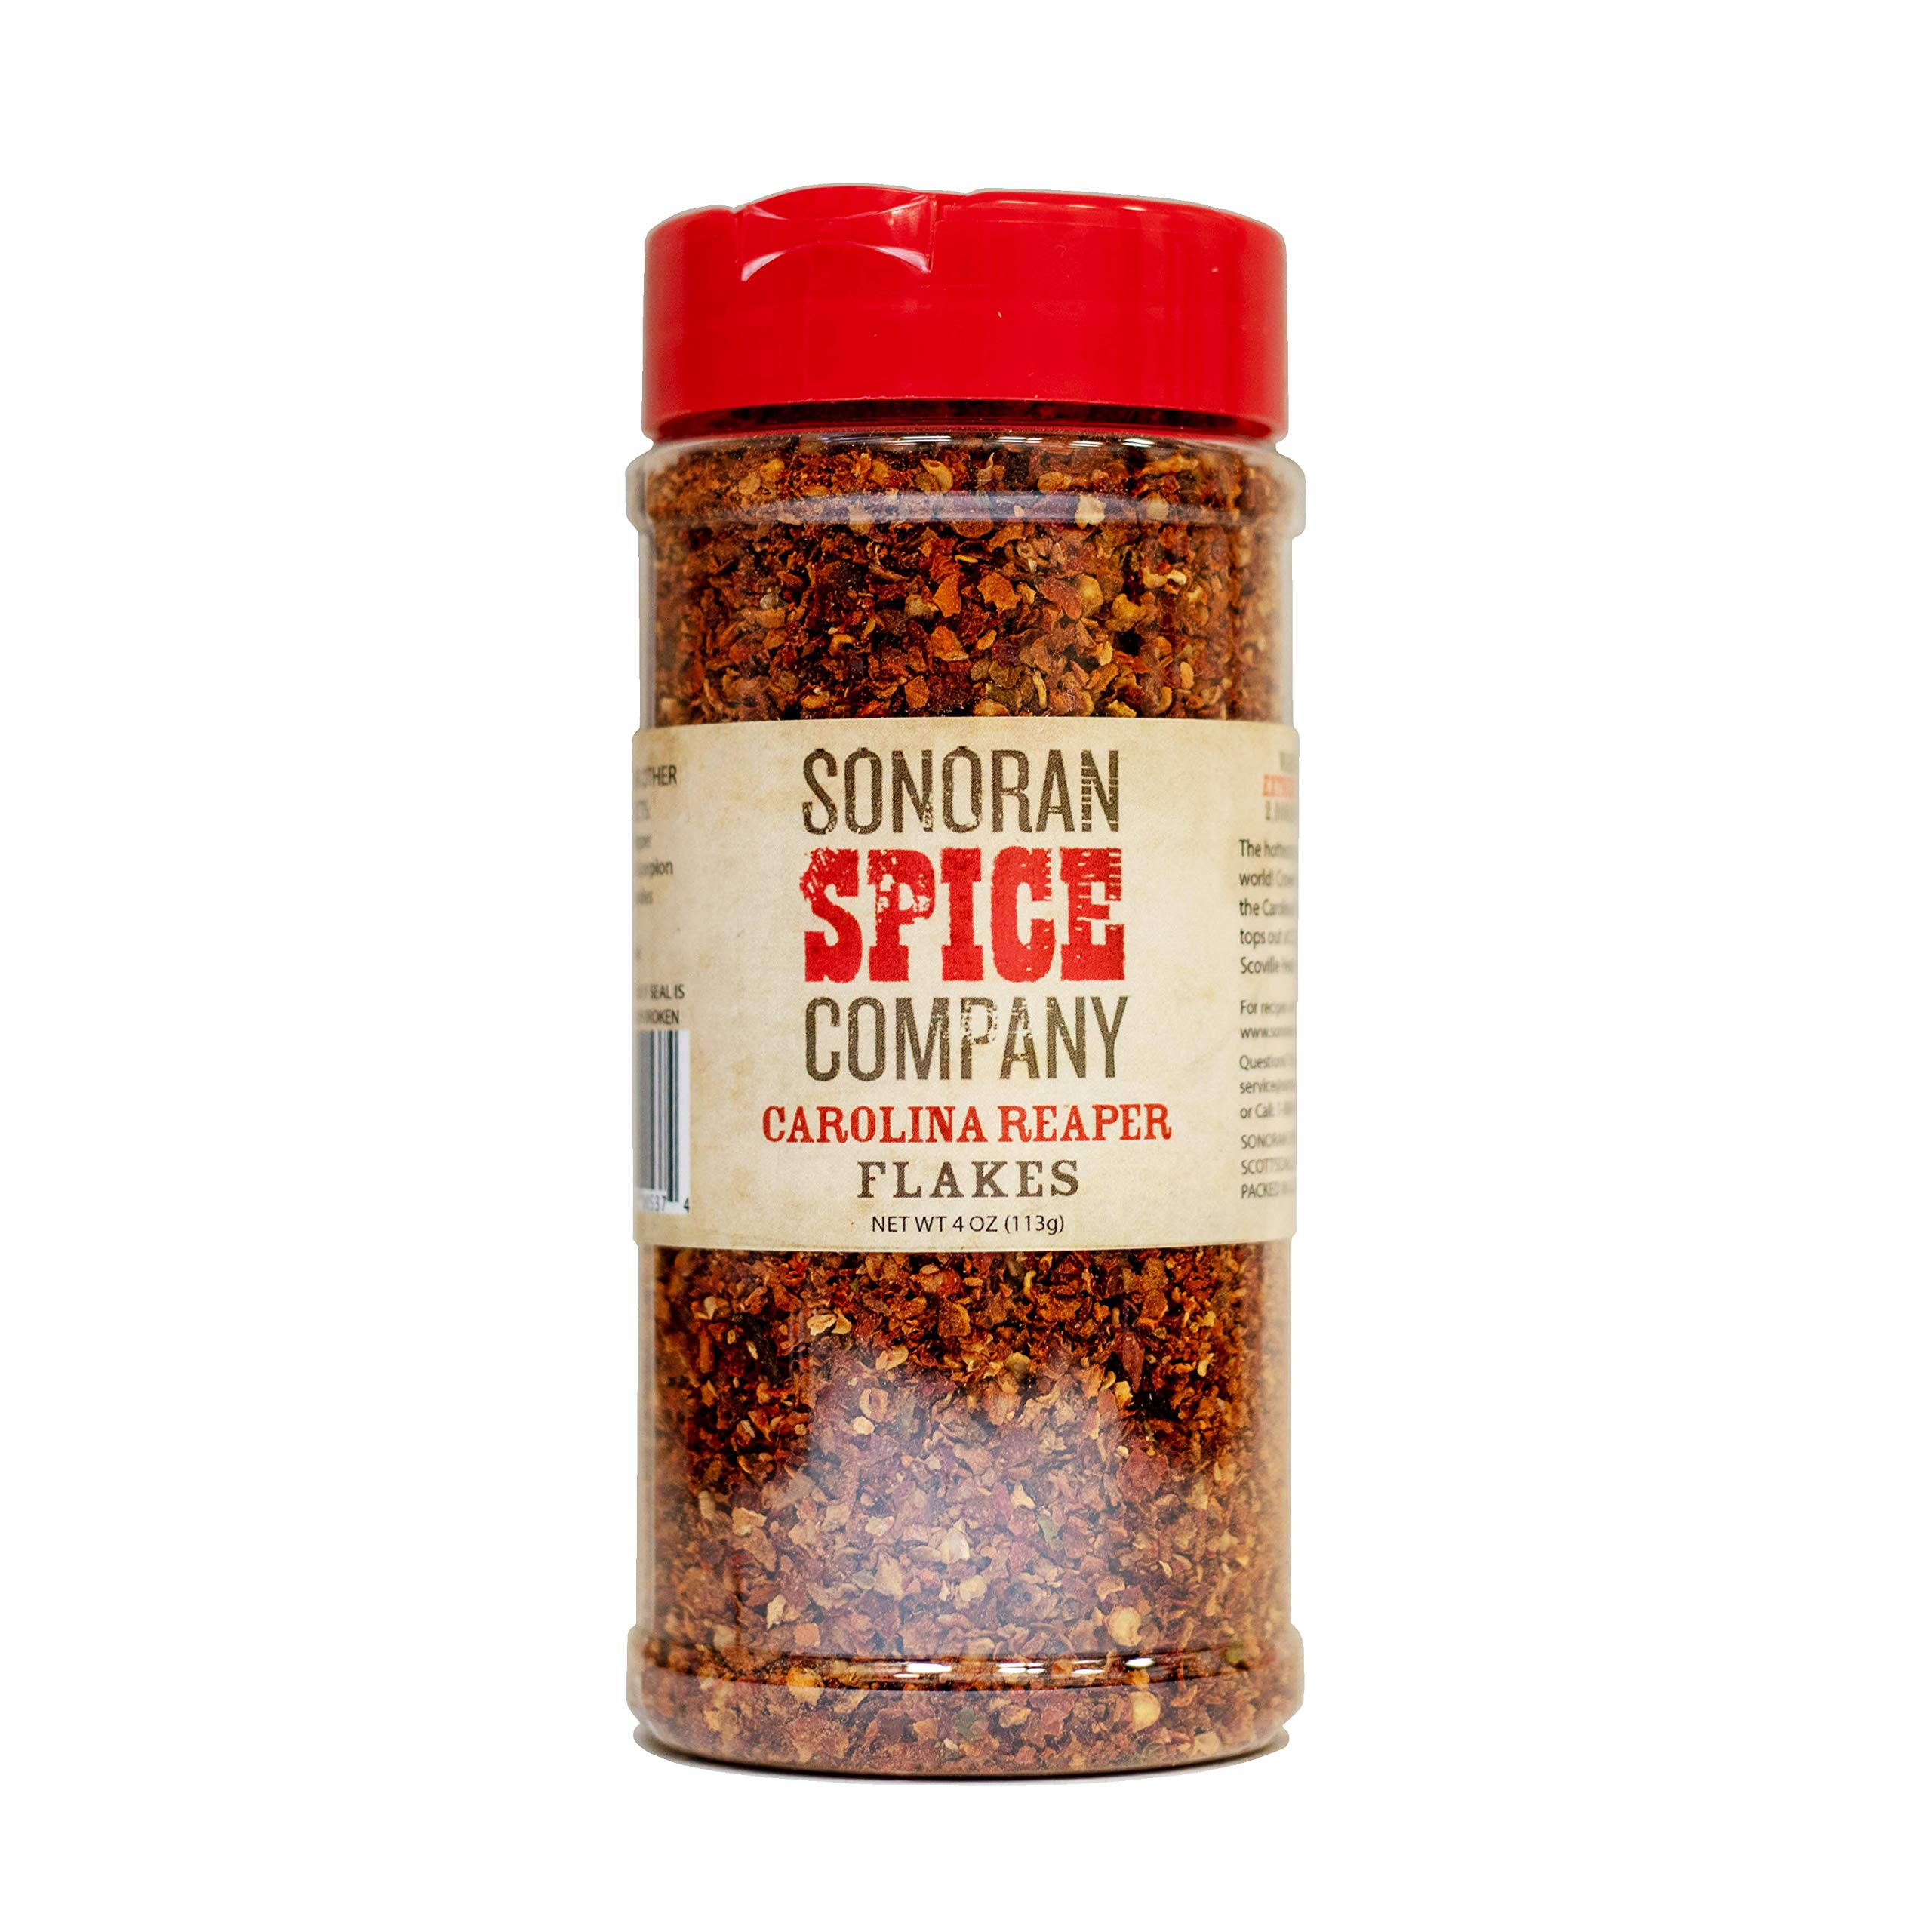 Carolina Reaper Flakes (4 Oz) by Sonoran Spice (Image #1)